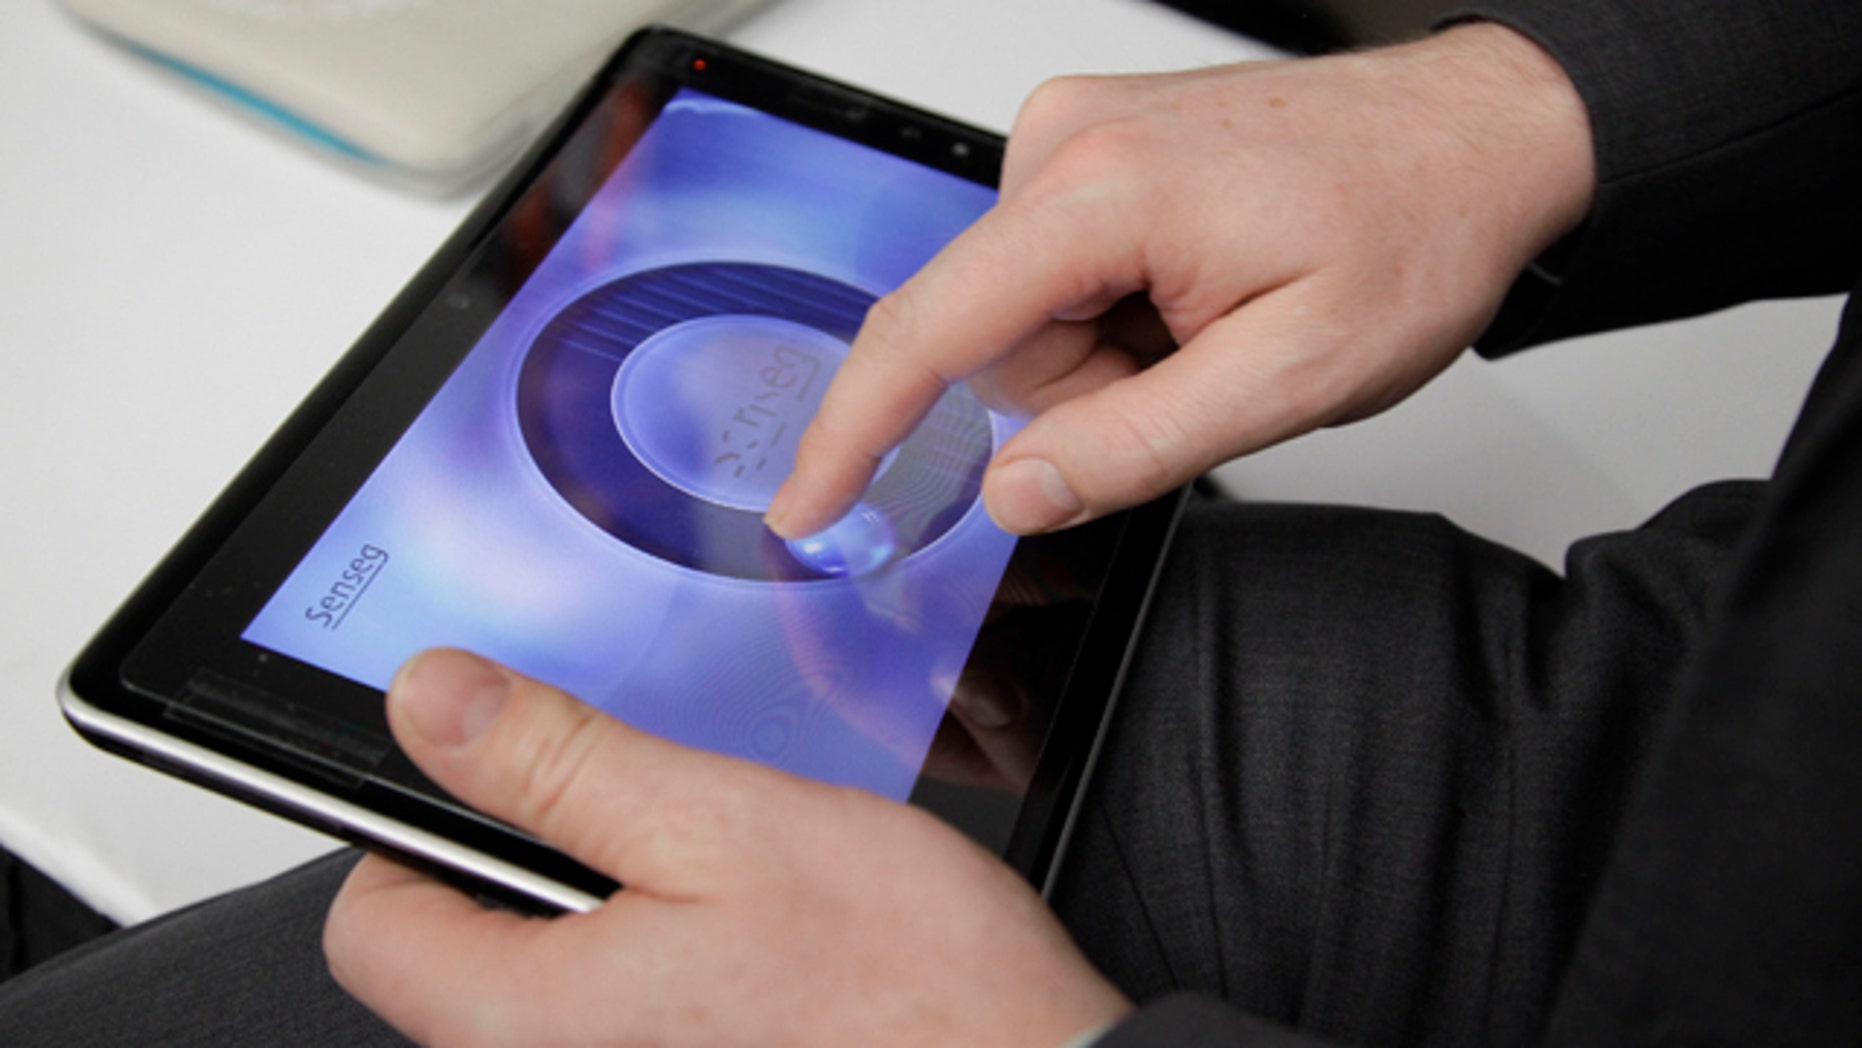 Jan. 11, 2012: A tablet made by Senseg is demonstrated at the 2012 International CES tradeshow in Las Vegas. The tablet gives the user tactile feedback at the touch of the screen.